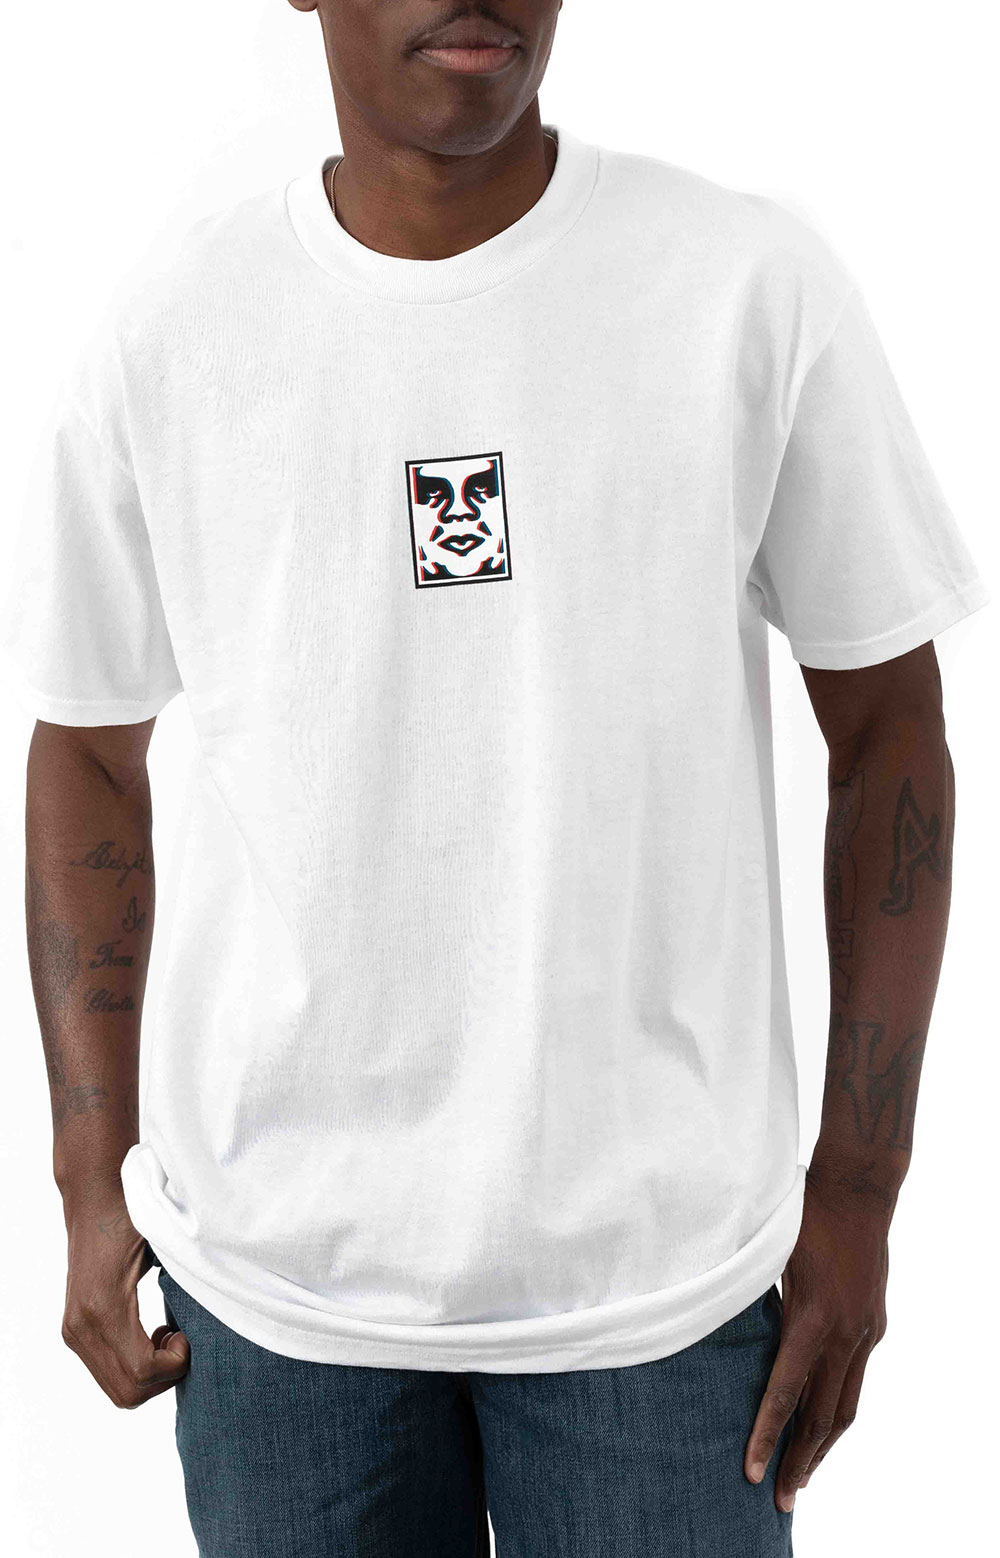 Obey Double Vision T-Shirt - White